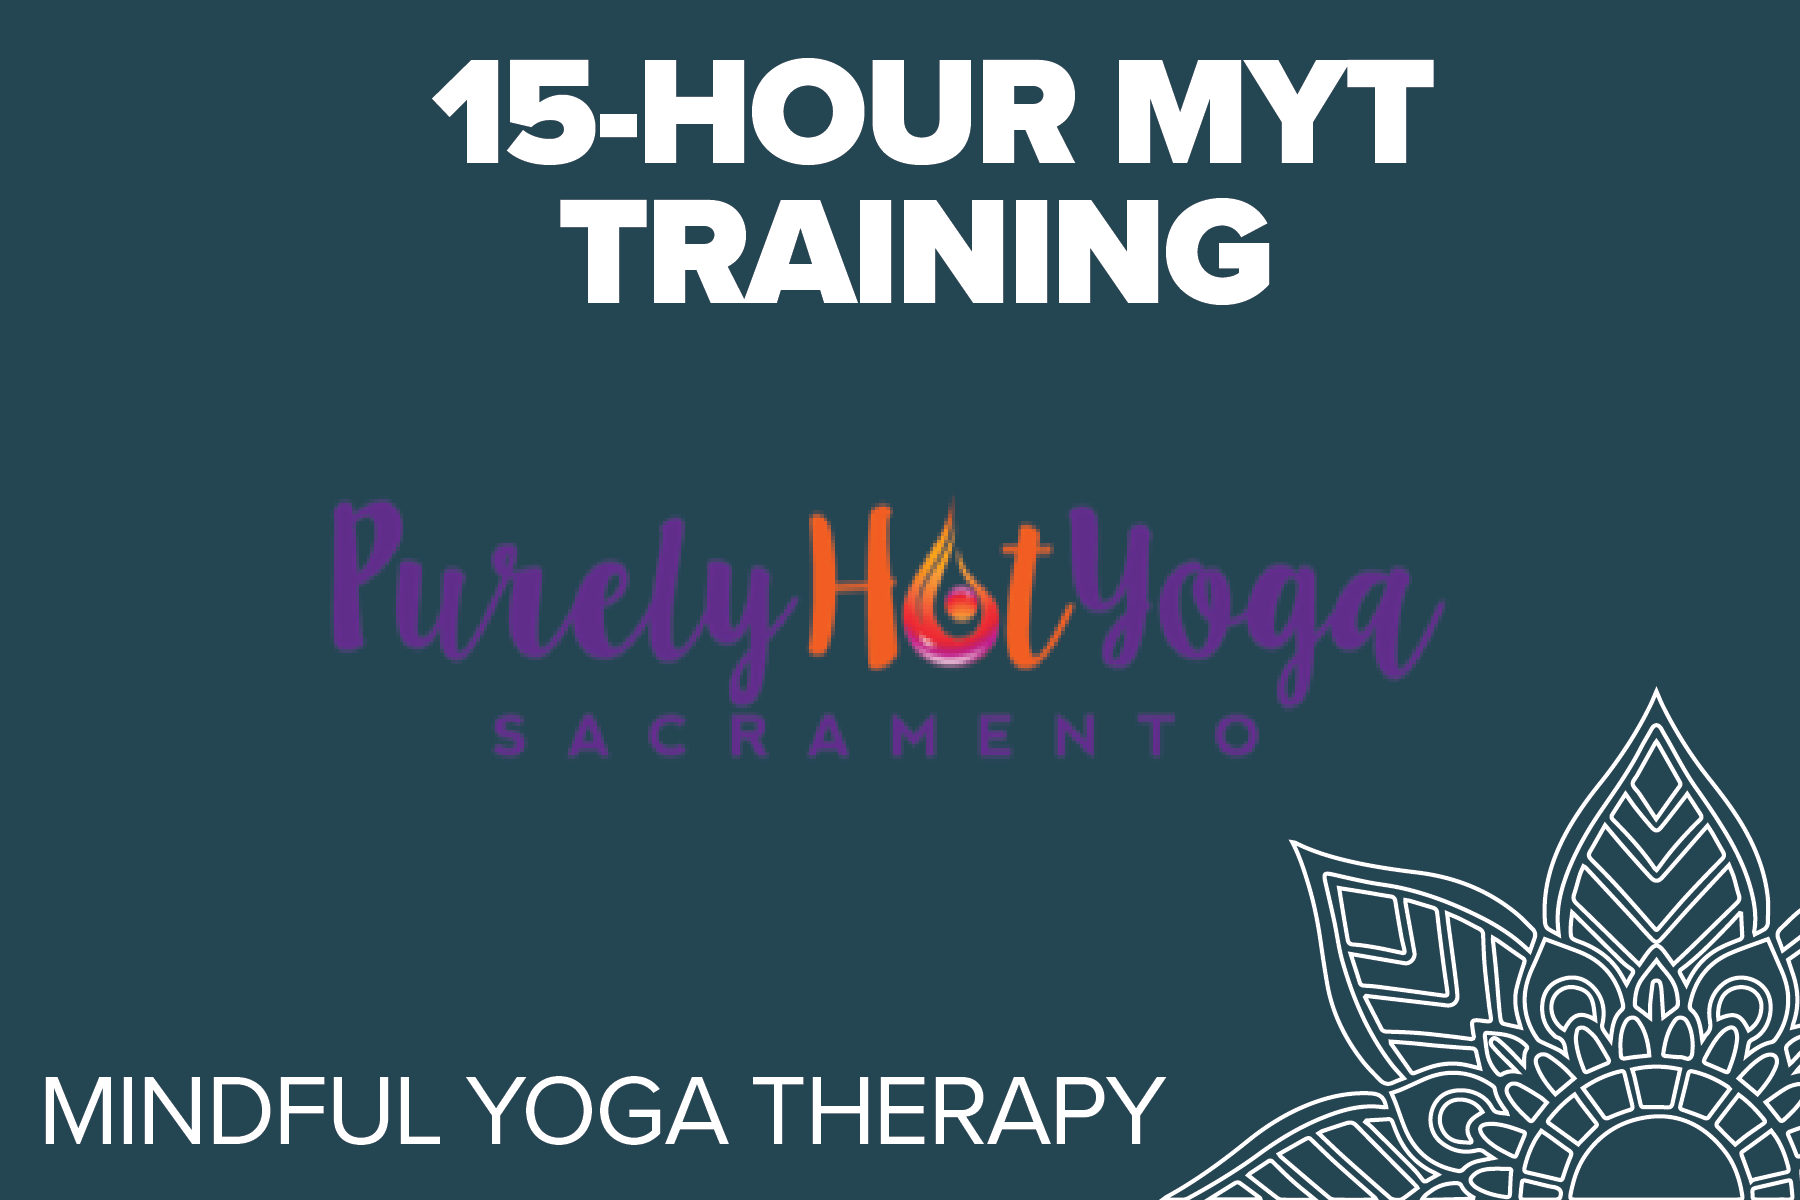 Purely Hot Yoga - Mindful Yoga Therapy is an empirically informed, clinically tested program comprised of five practices: Pranayama (breathing), Asana (postures connected with breath), Yoga Nidra, Meditation, and Gratitude.REGISTRATION COMING SOON!